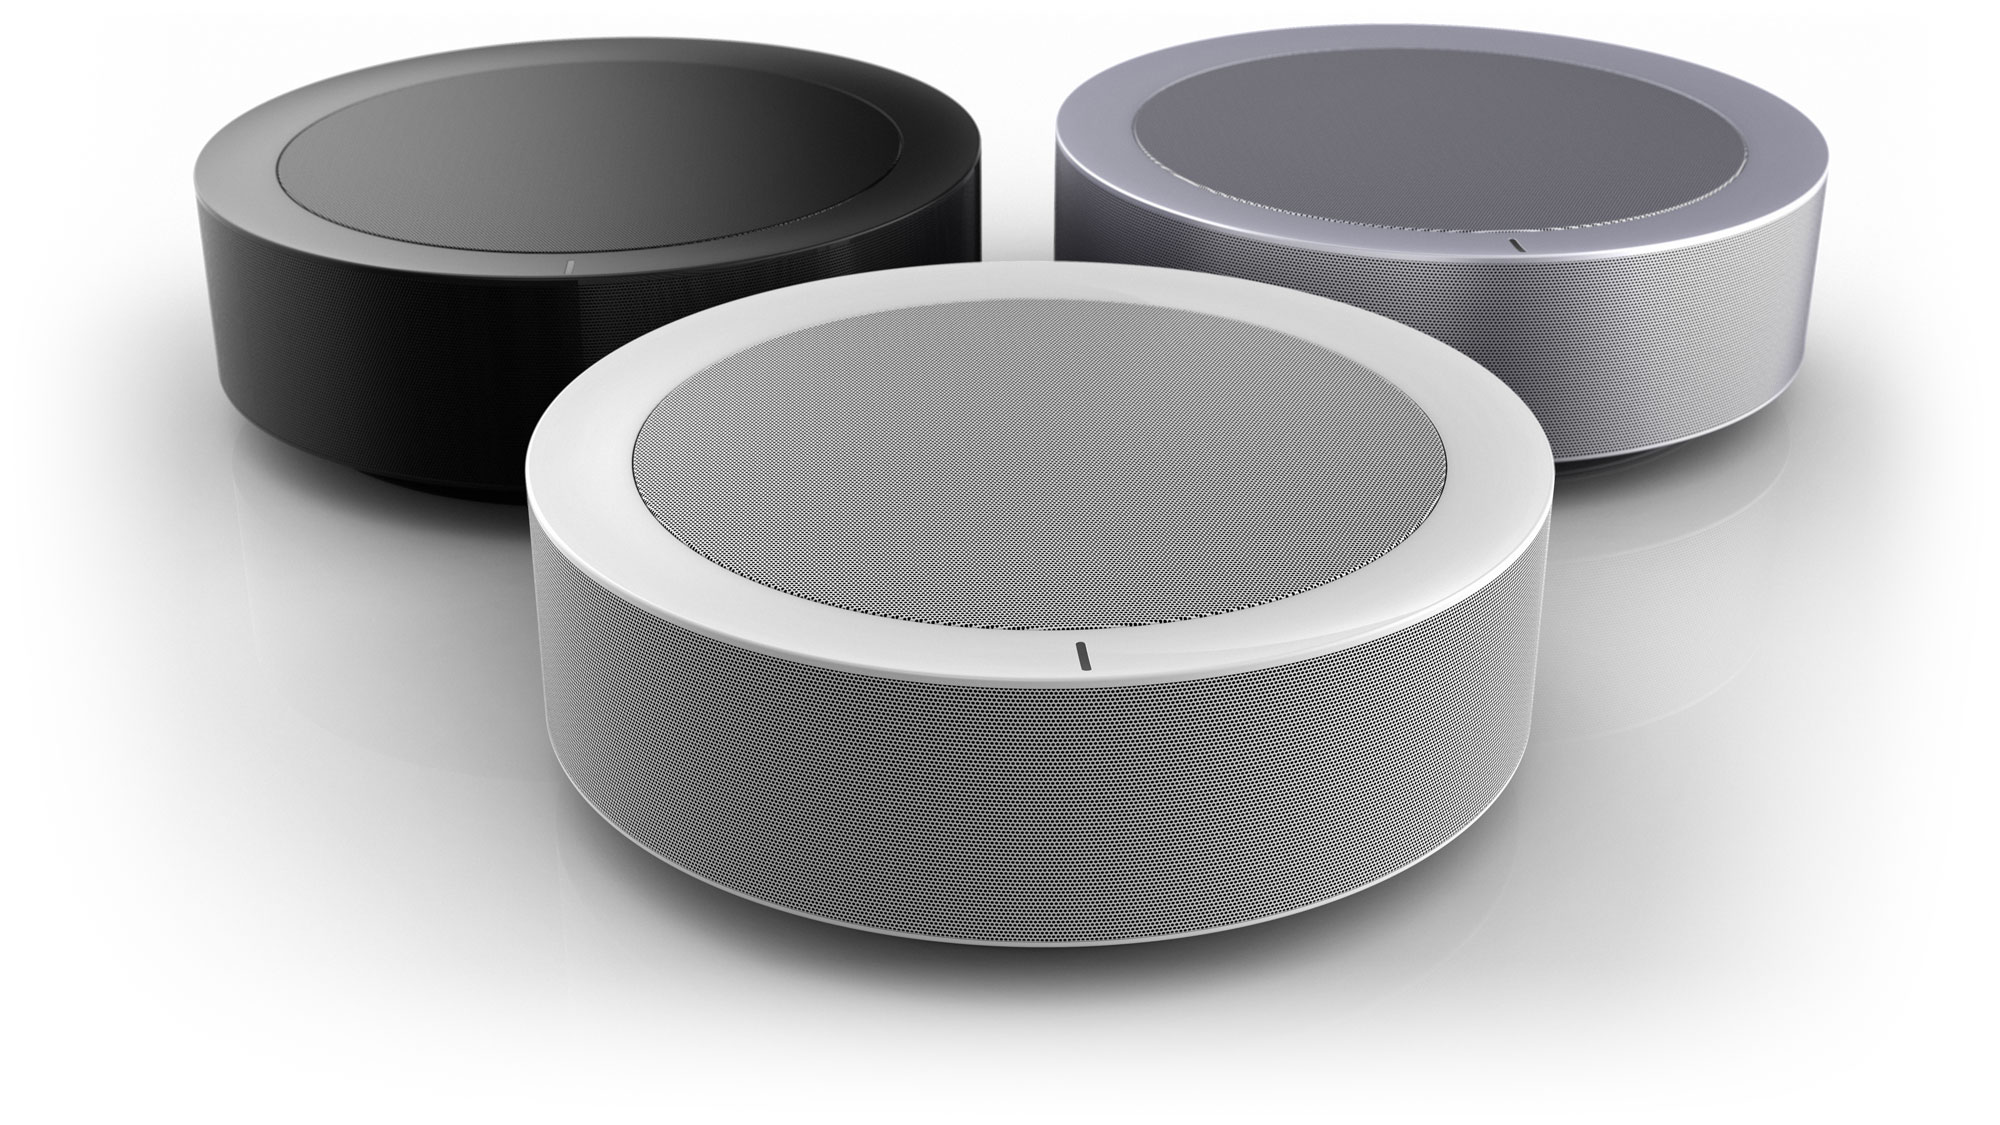 HiddenHUB Optimizes 360-degree Sound to the Shape of Your Room